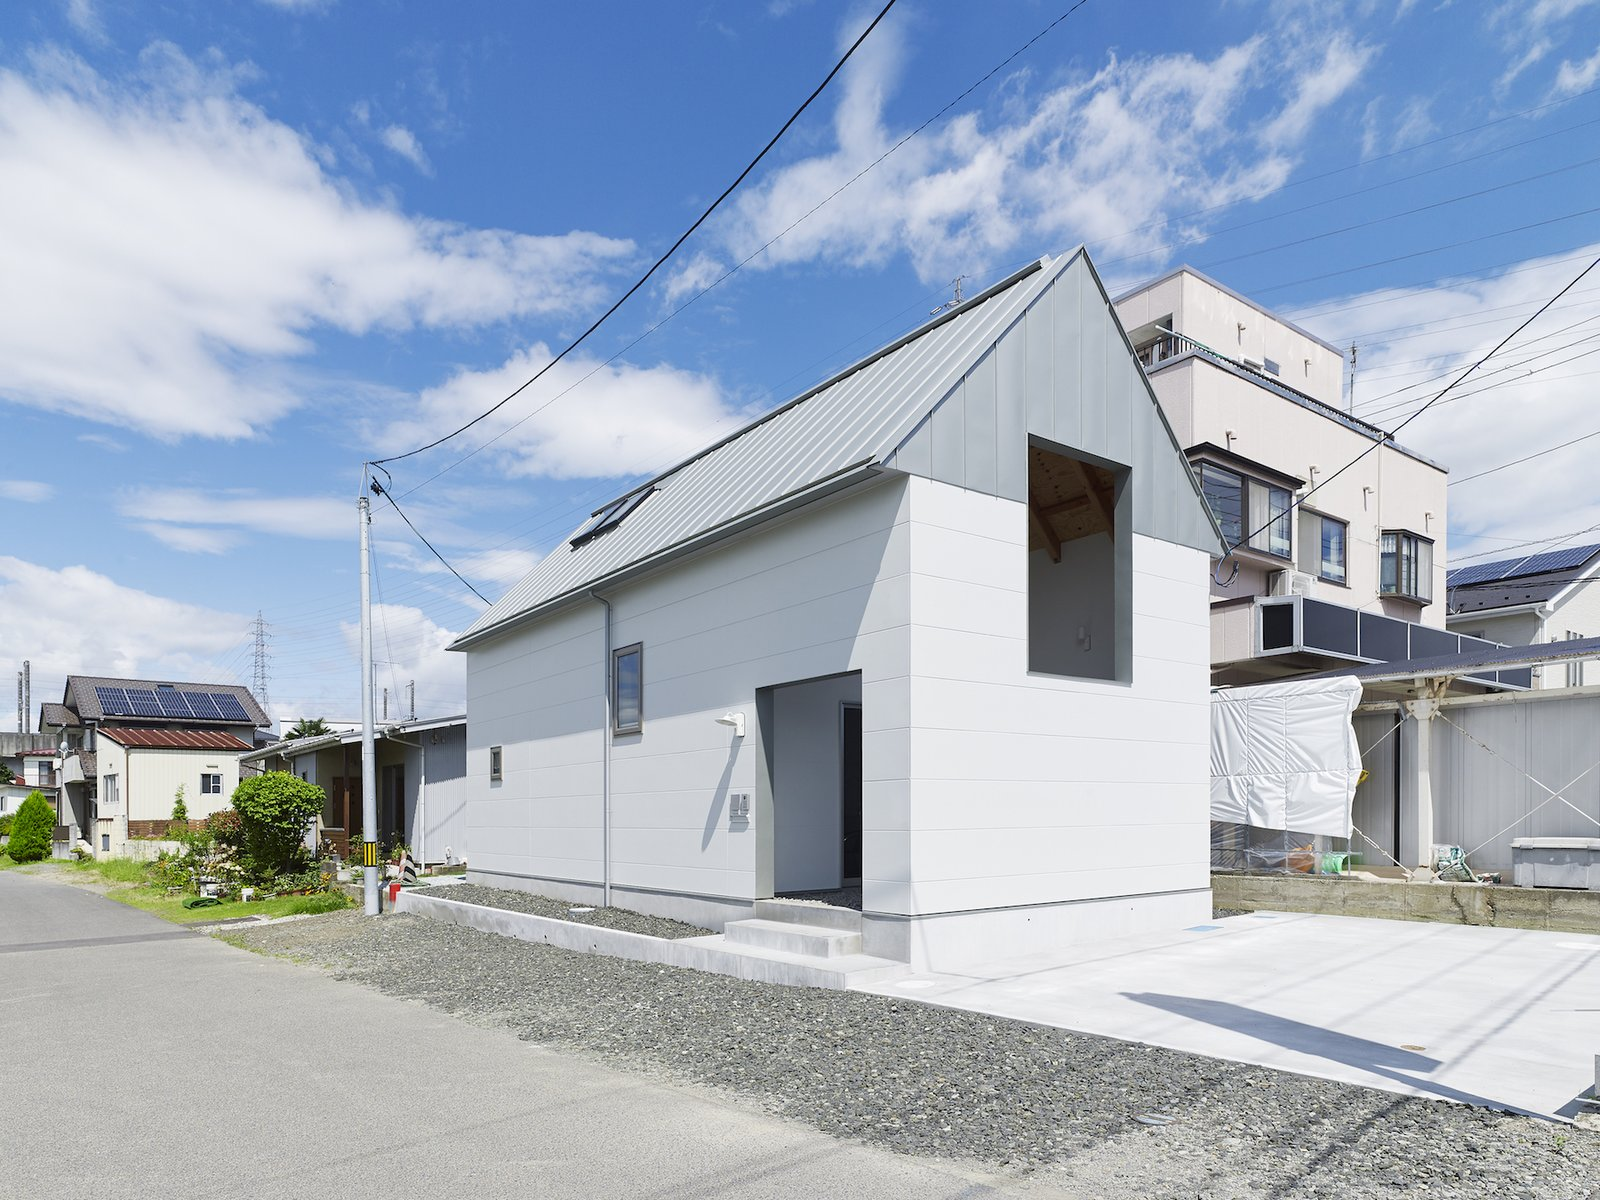 Photo 1 of 9 in House in Suwamachi by Kazuya Saito Architects